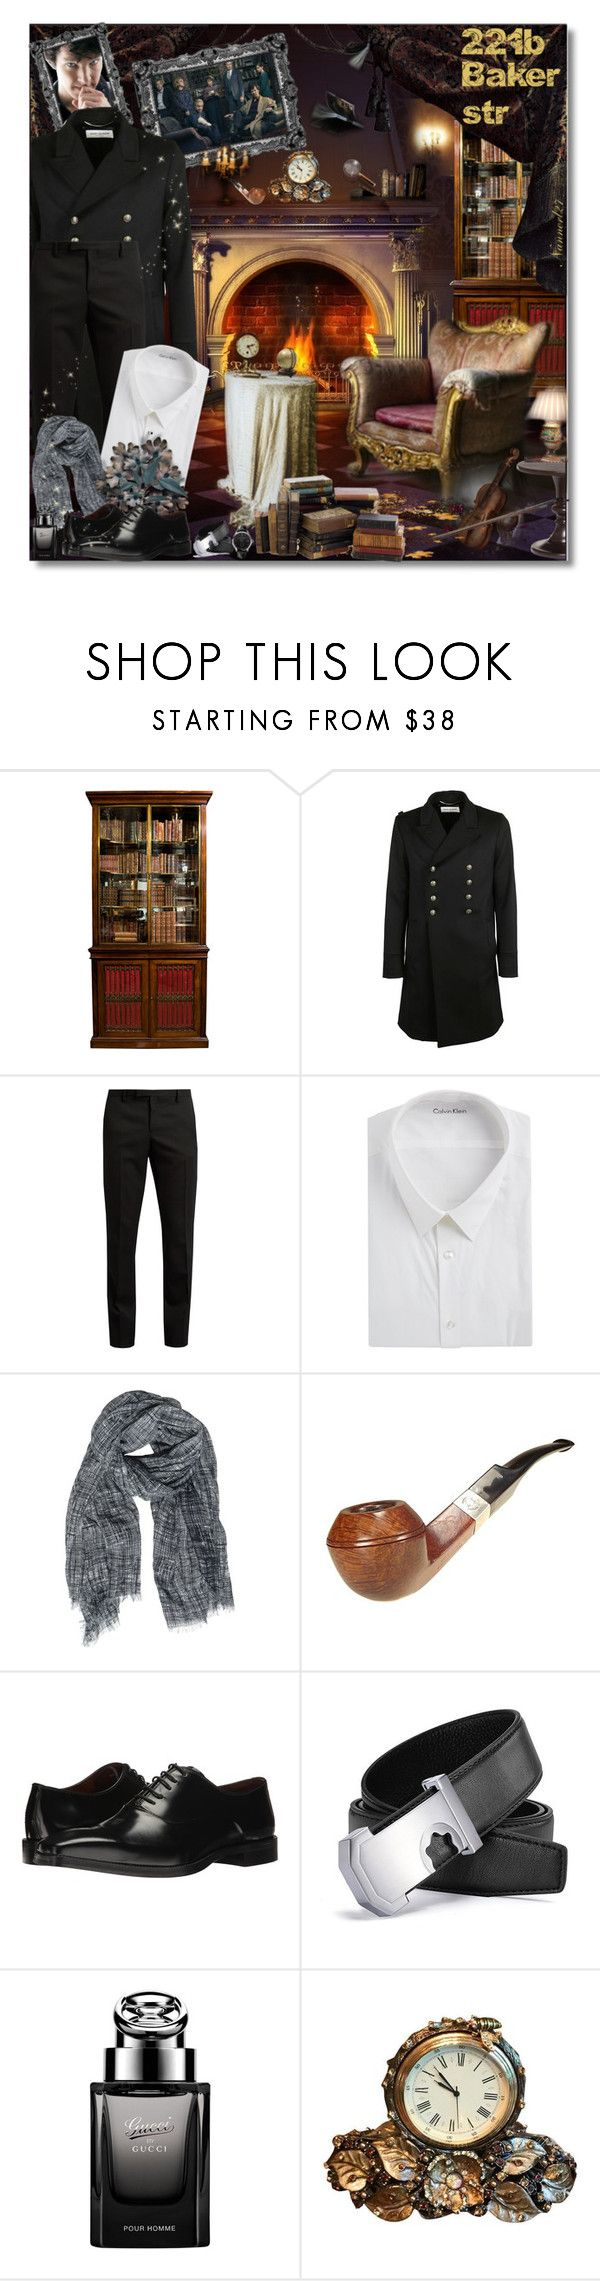 """""""221b Baker str..."""" by nannerl27forever on Polyvore featuring REGENCY, Yves Saint Laurent, Calvin Klein, Destin Surl, Massimo Matteo, Gucci, Jay Strongwater, Carl F. Bucherer, men's fashion and menswear"""